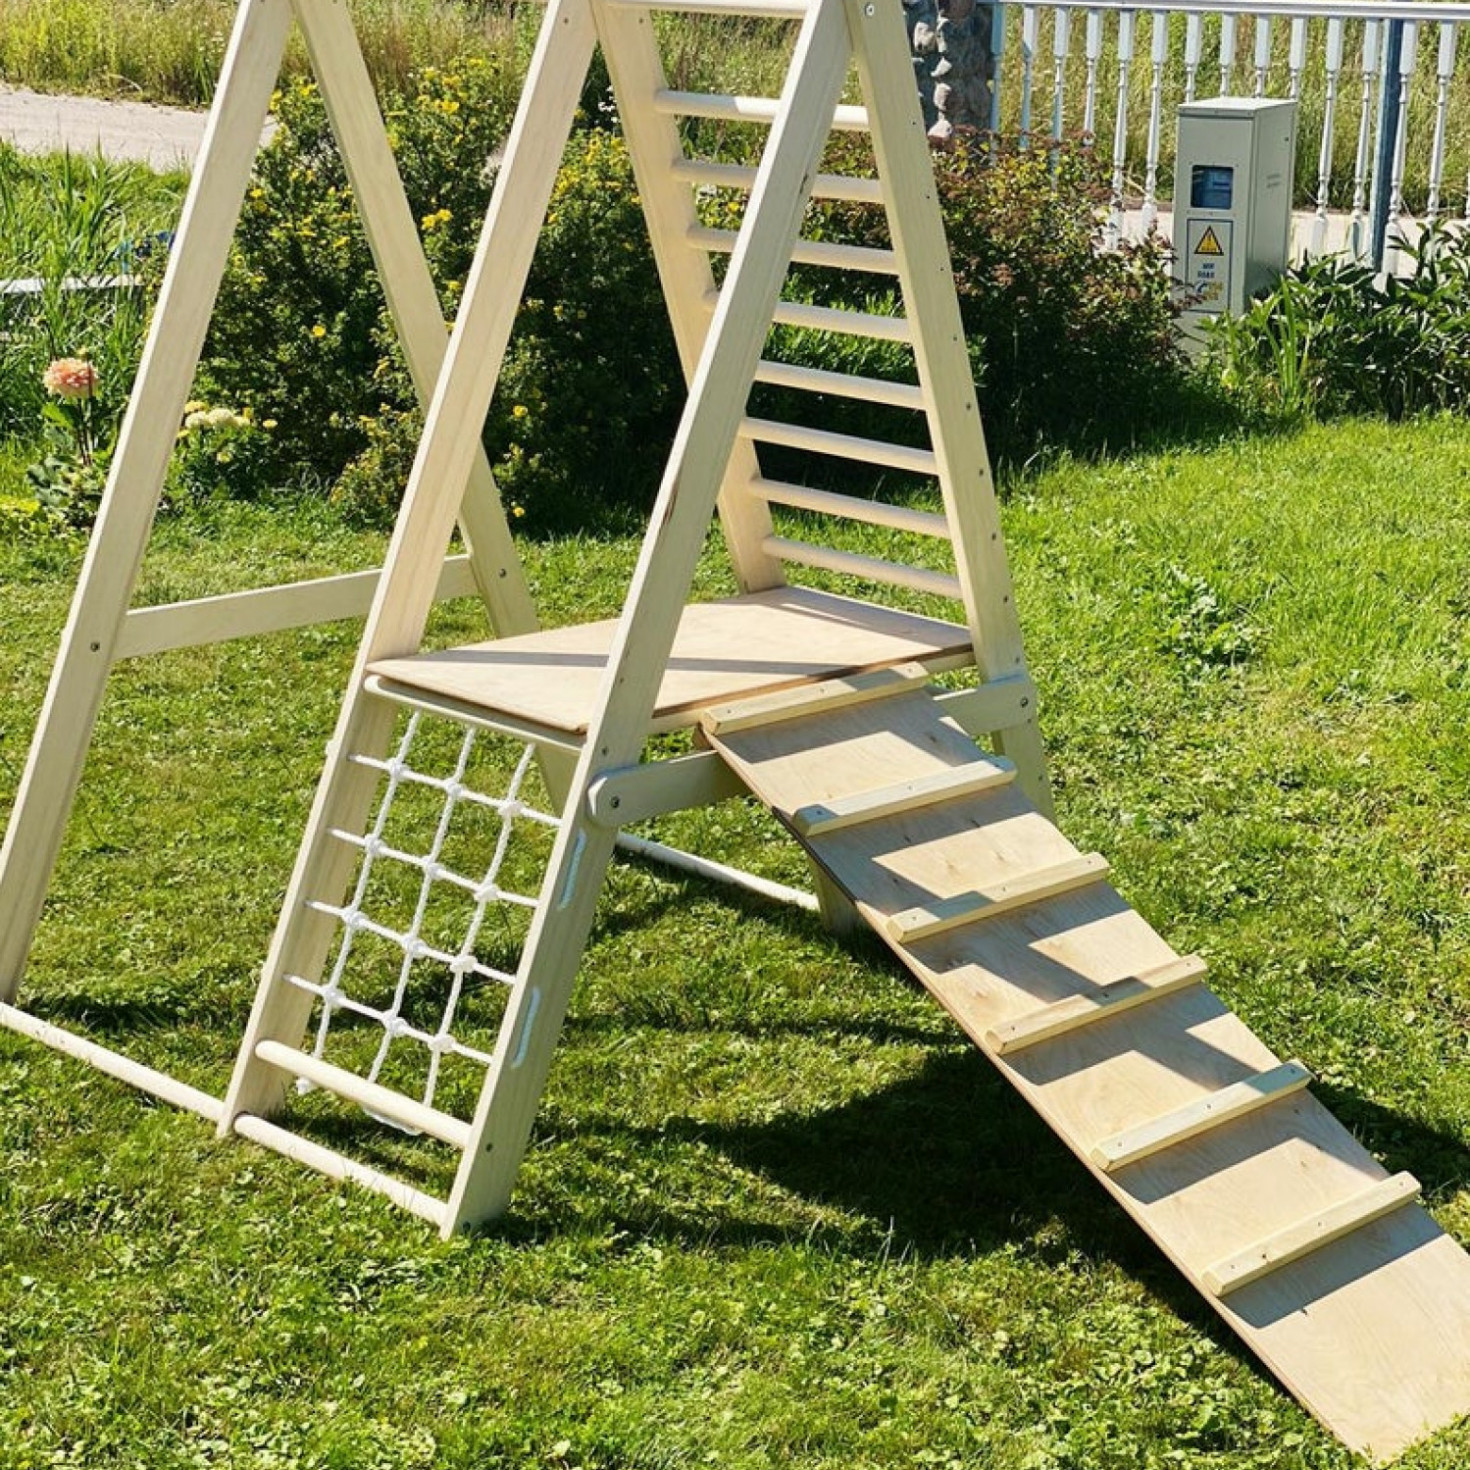 A gym for toddlers with a ladder board